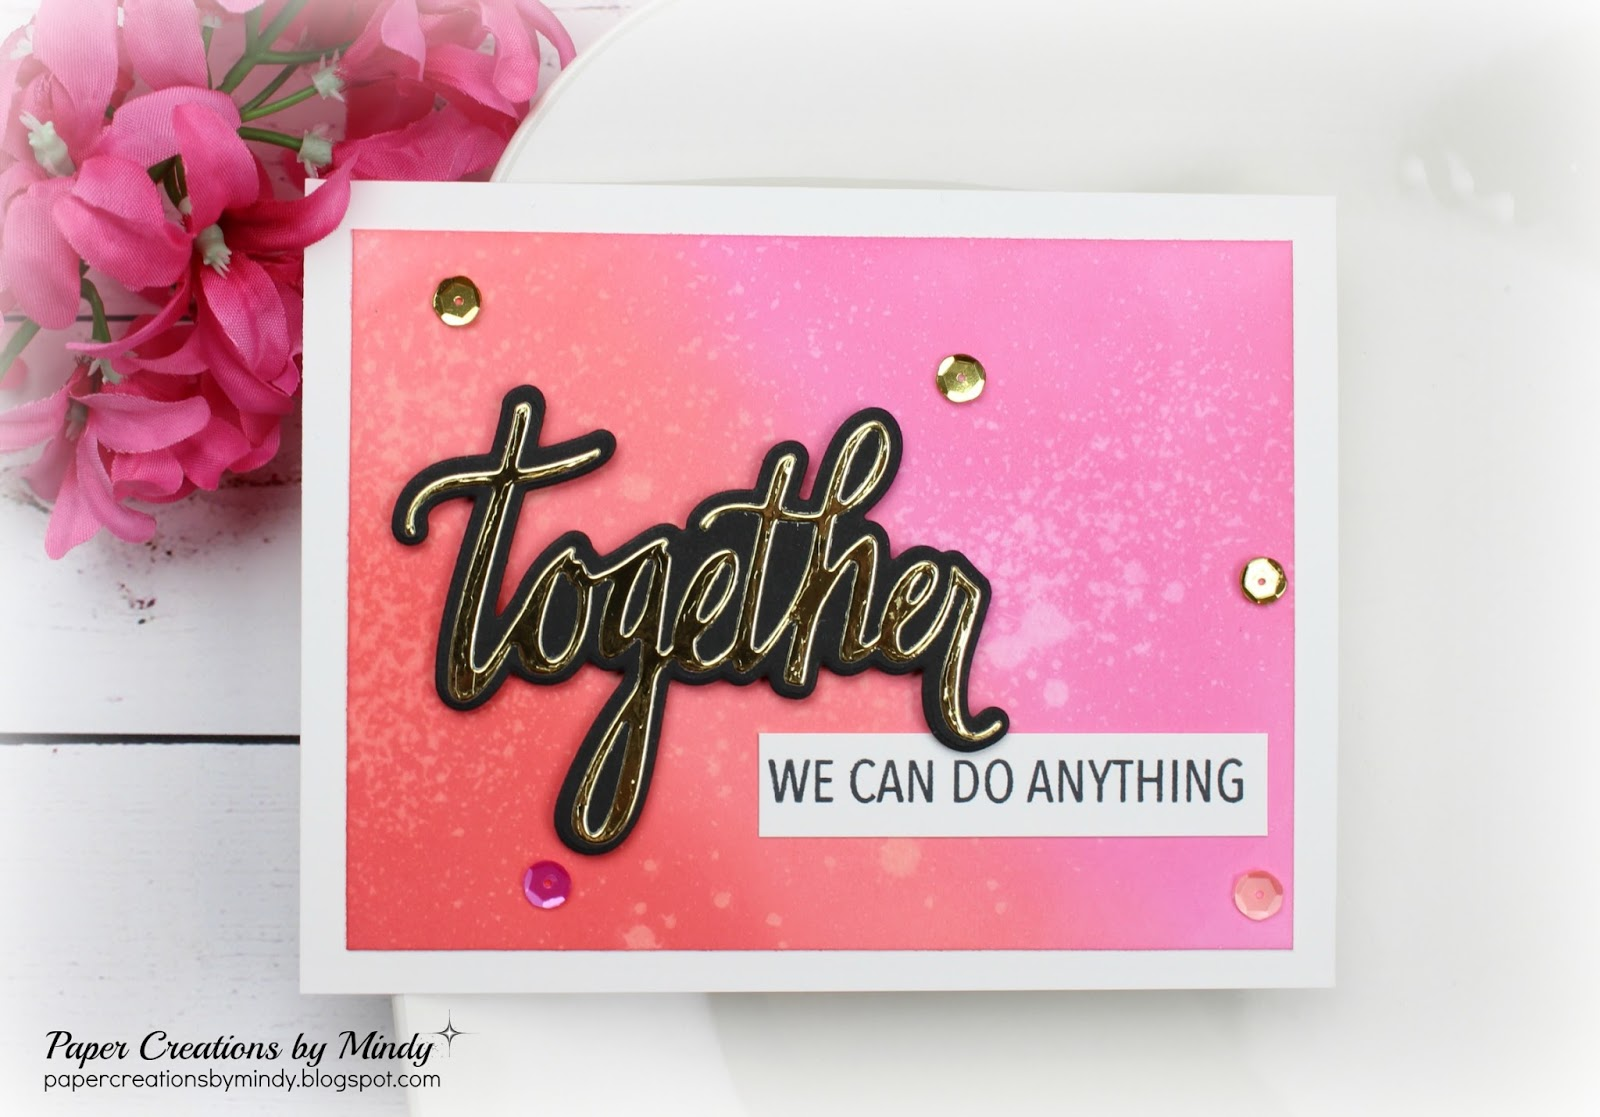 Together neat tangled mindy eggen design for Tangle creations ebay